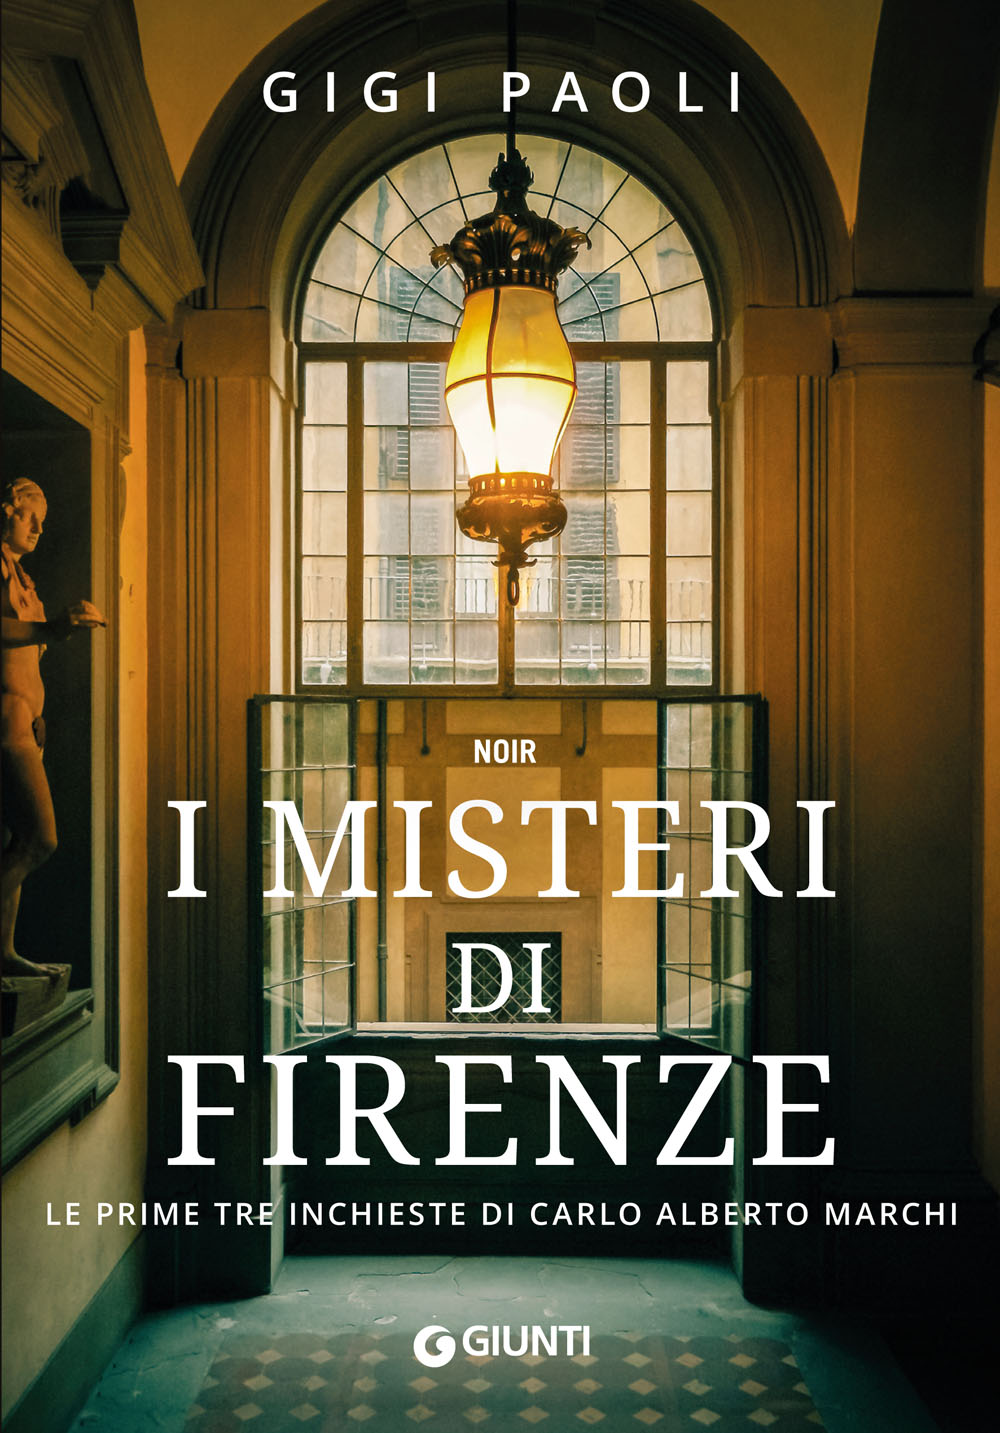 I misteri di Firenze (The mysteries of Florence)